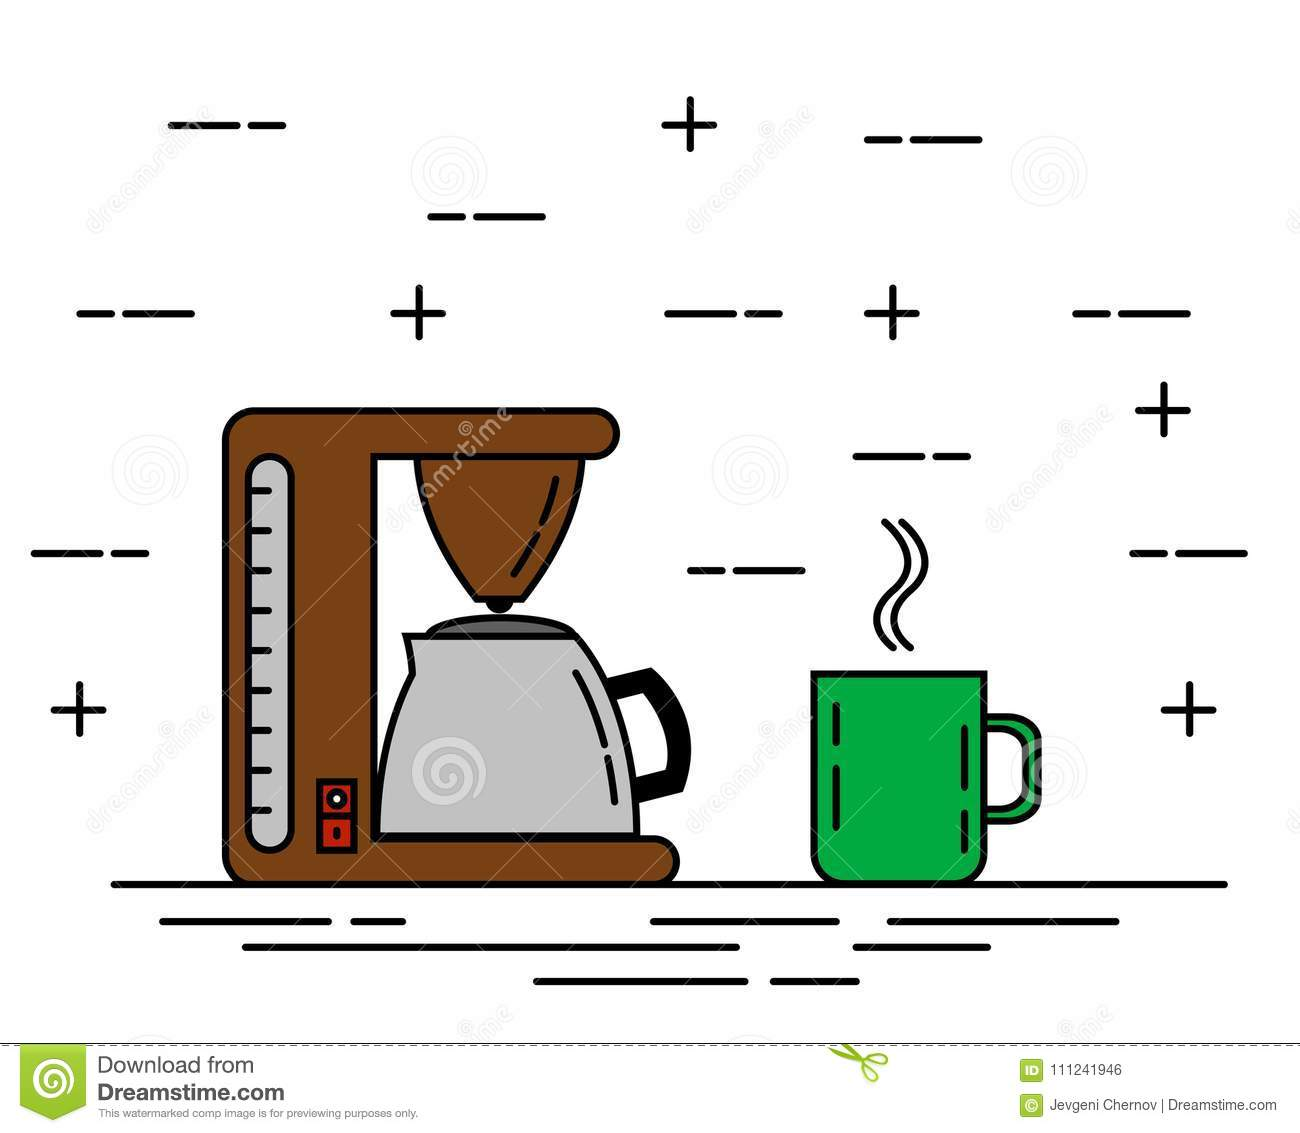 Coffee Machine With A Cup Or Mug Flat Thine Line Art Stock Vector Diagram